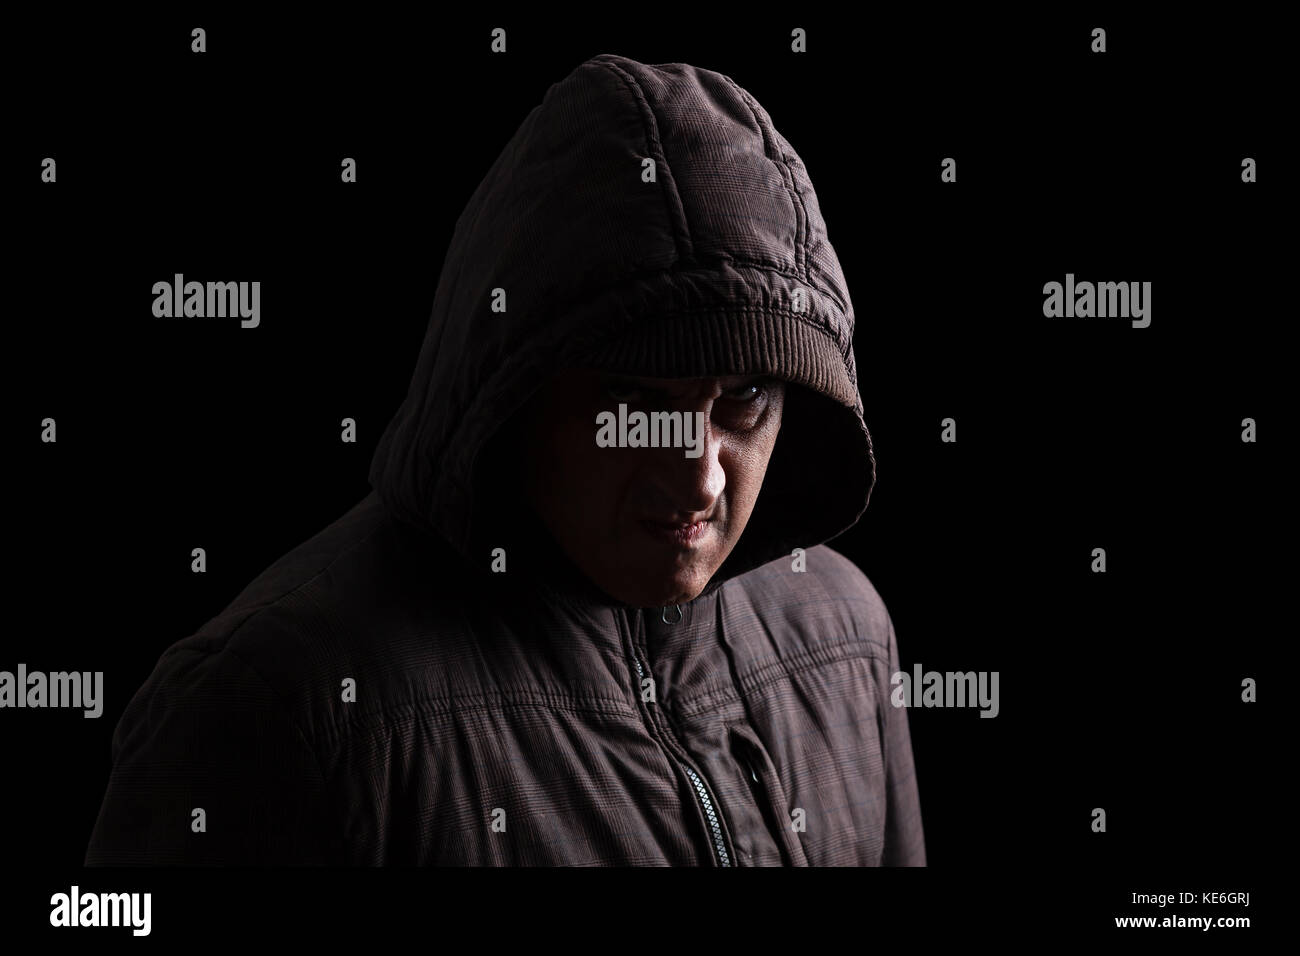 Man with repressed anger and violent instinct hiding in shadows. Standing in the darkness / angry passive aggressive - Stock Image